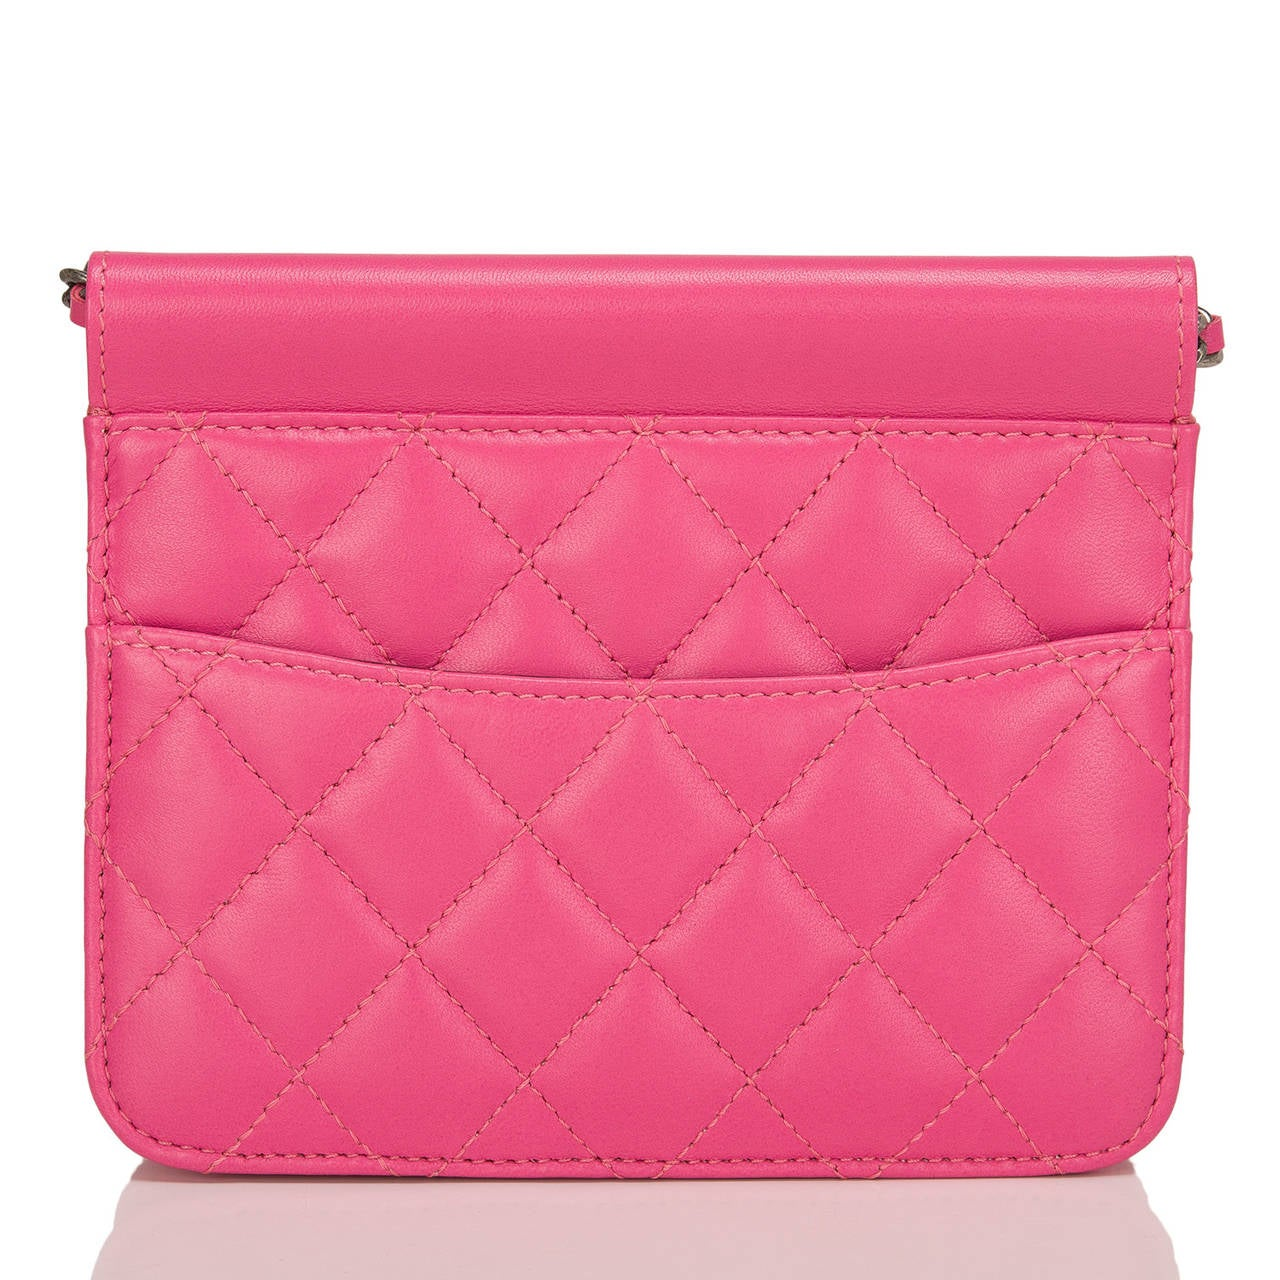 Chanel Pink Crossing Times Mini Flap Bag In New Never_worn Condition For Sale In New York, NY